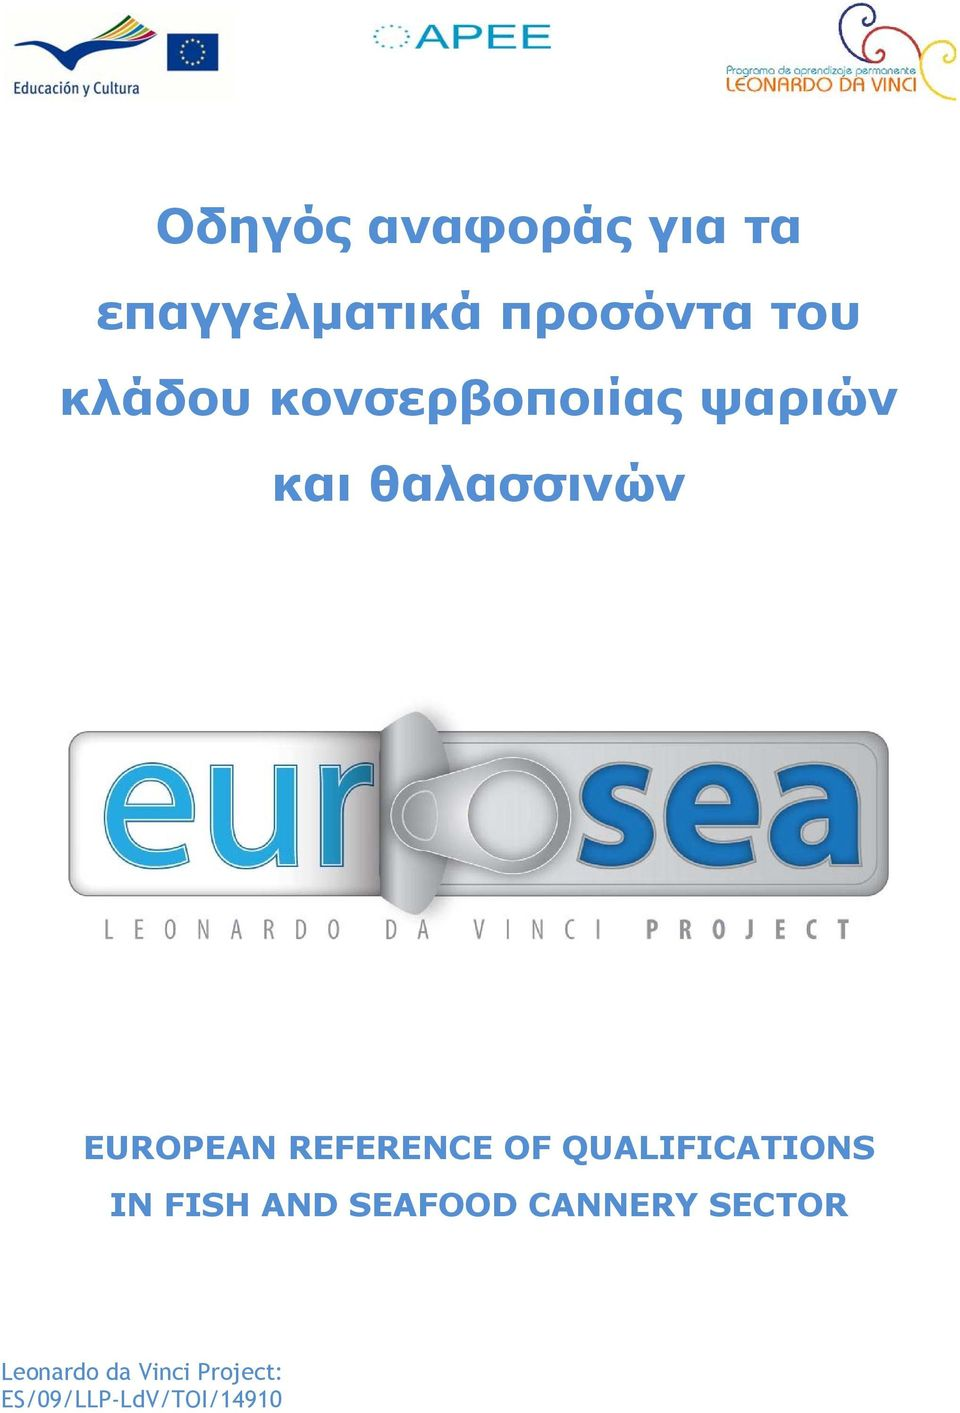 EUROPEAN REFERENCE OF QUALIFICATIONS IN FISH